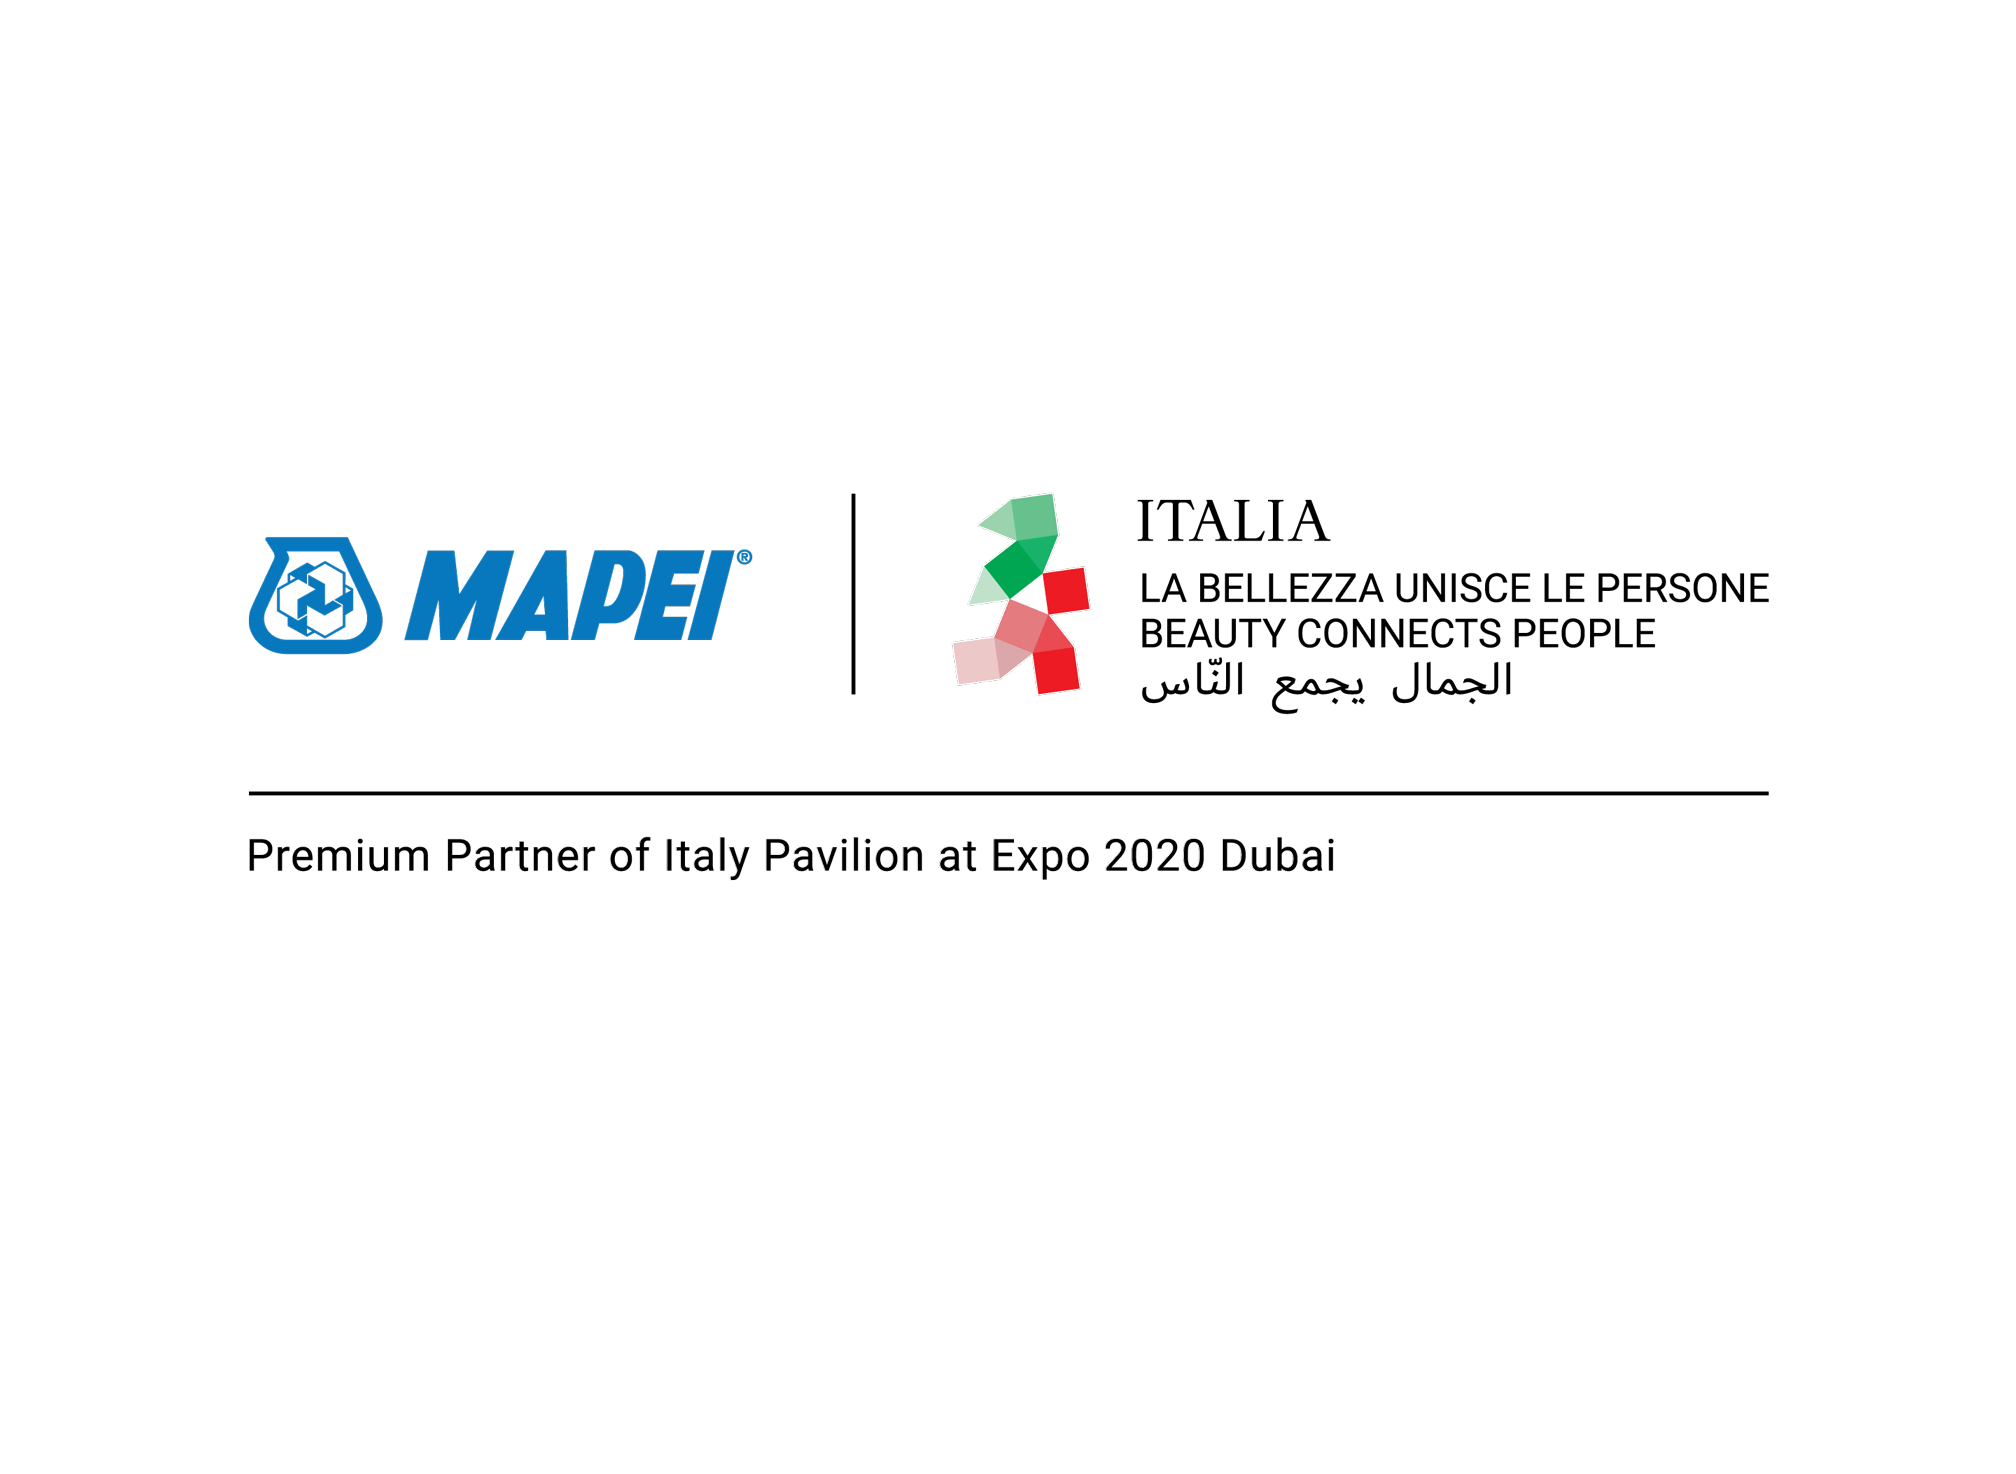 Mapei, Premium Partner of Italy Pavilion at EXPO 2020